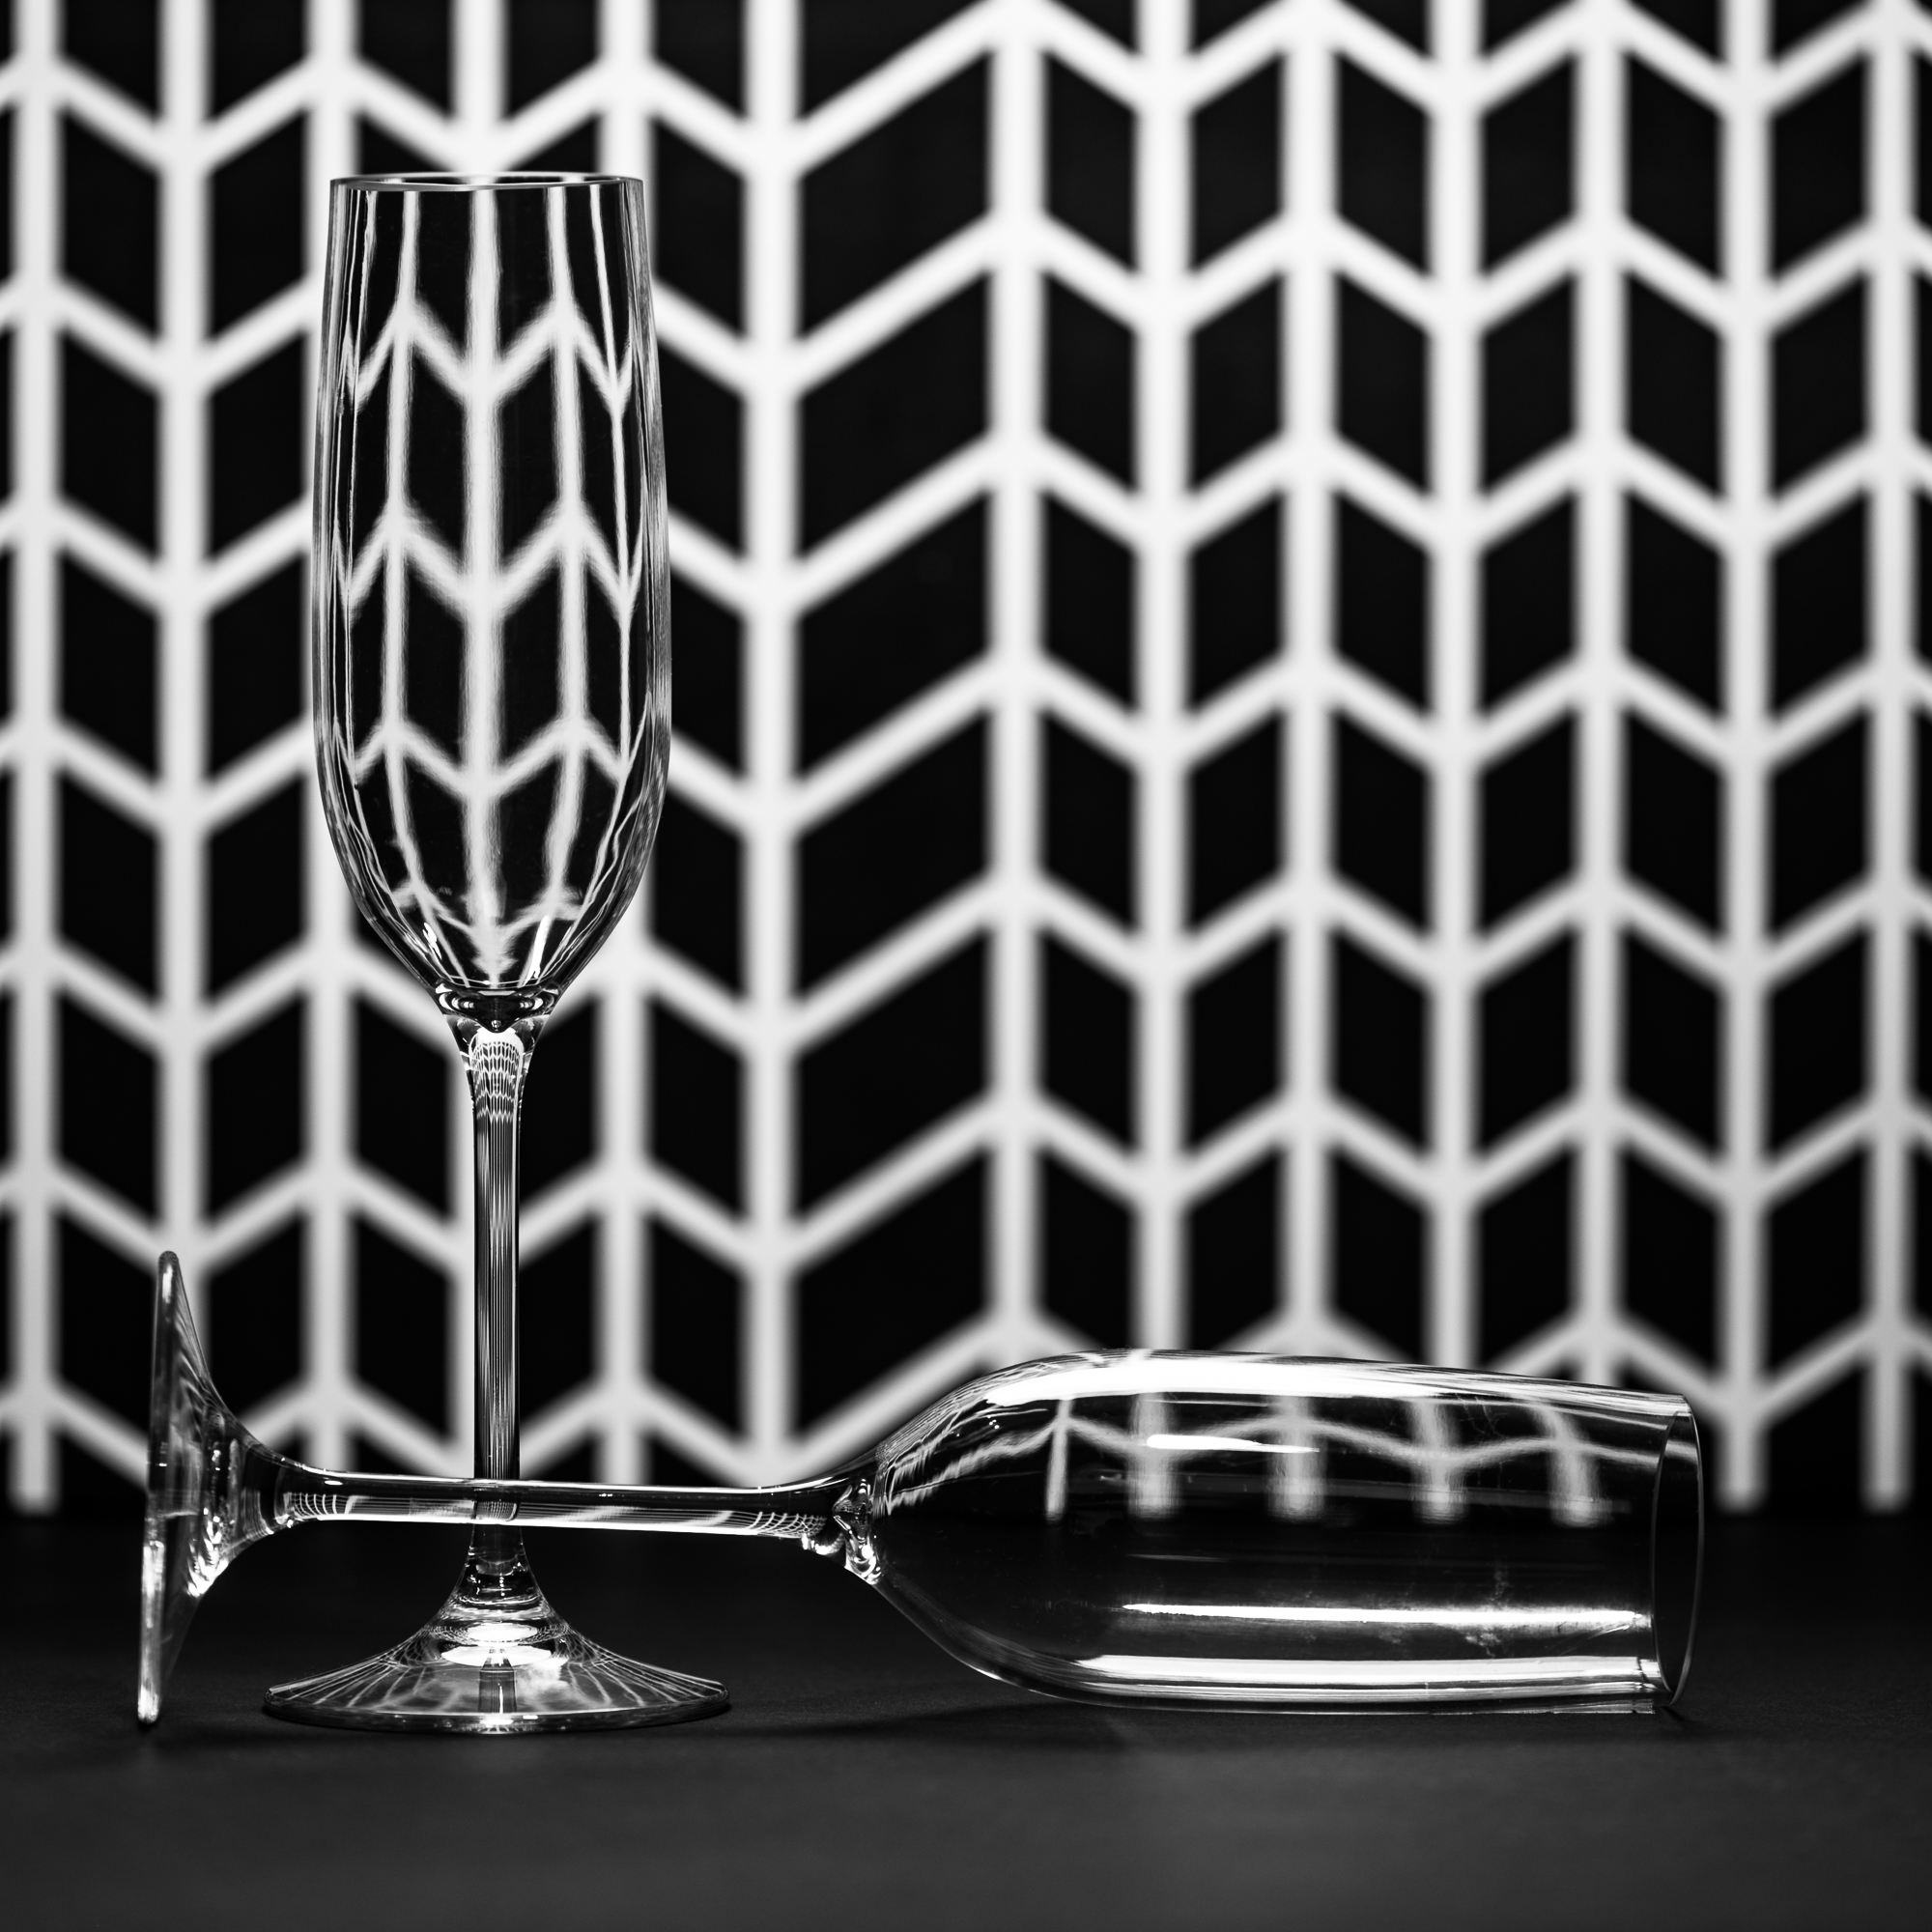 Lines in Glass